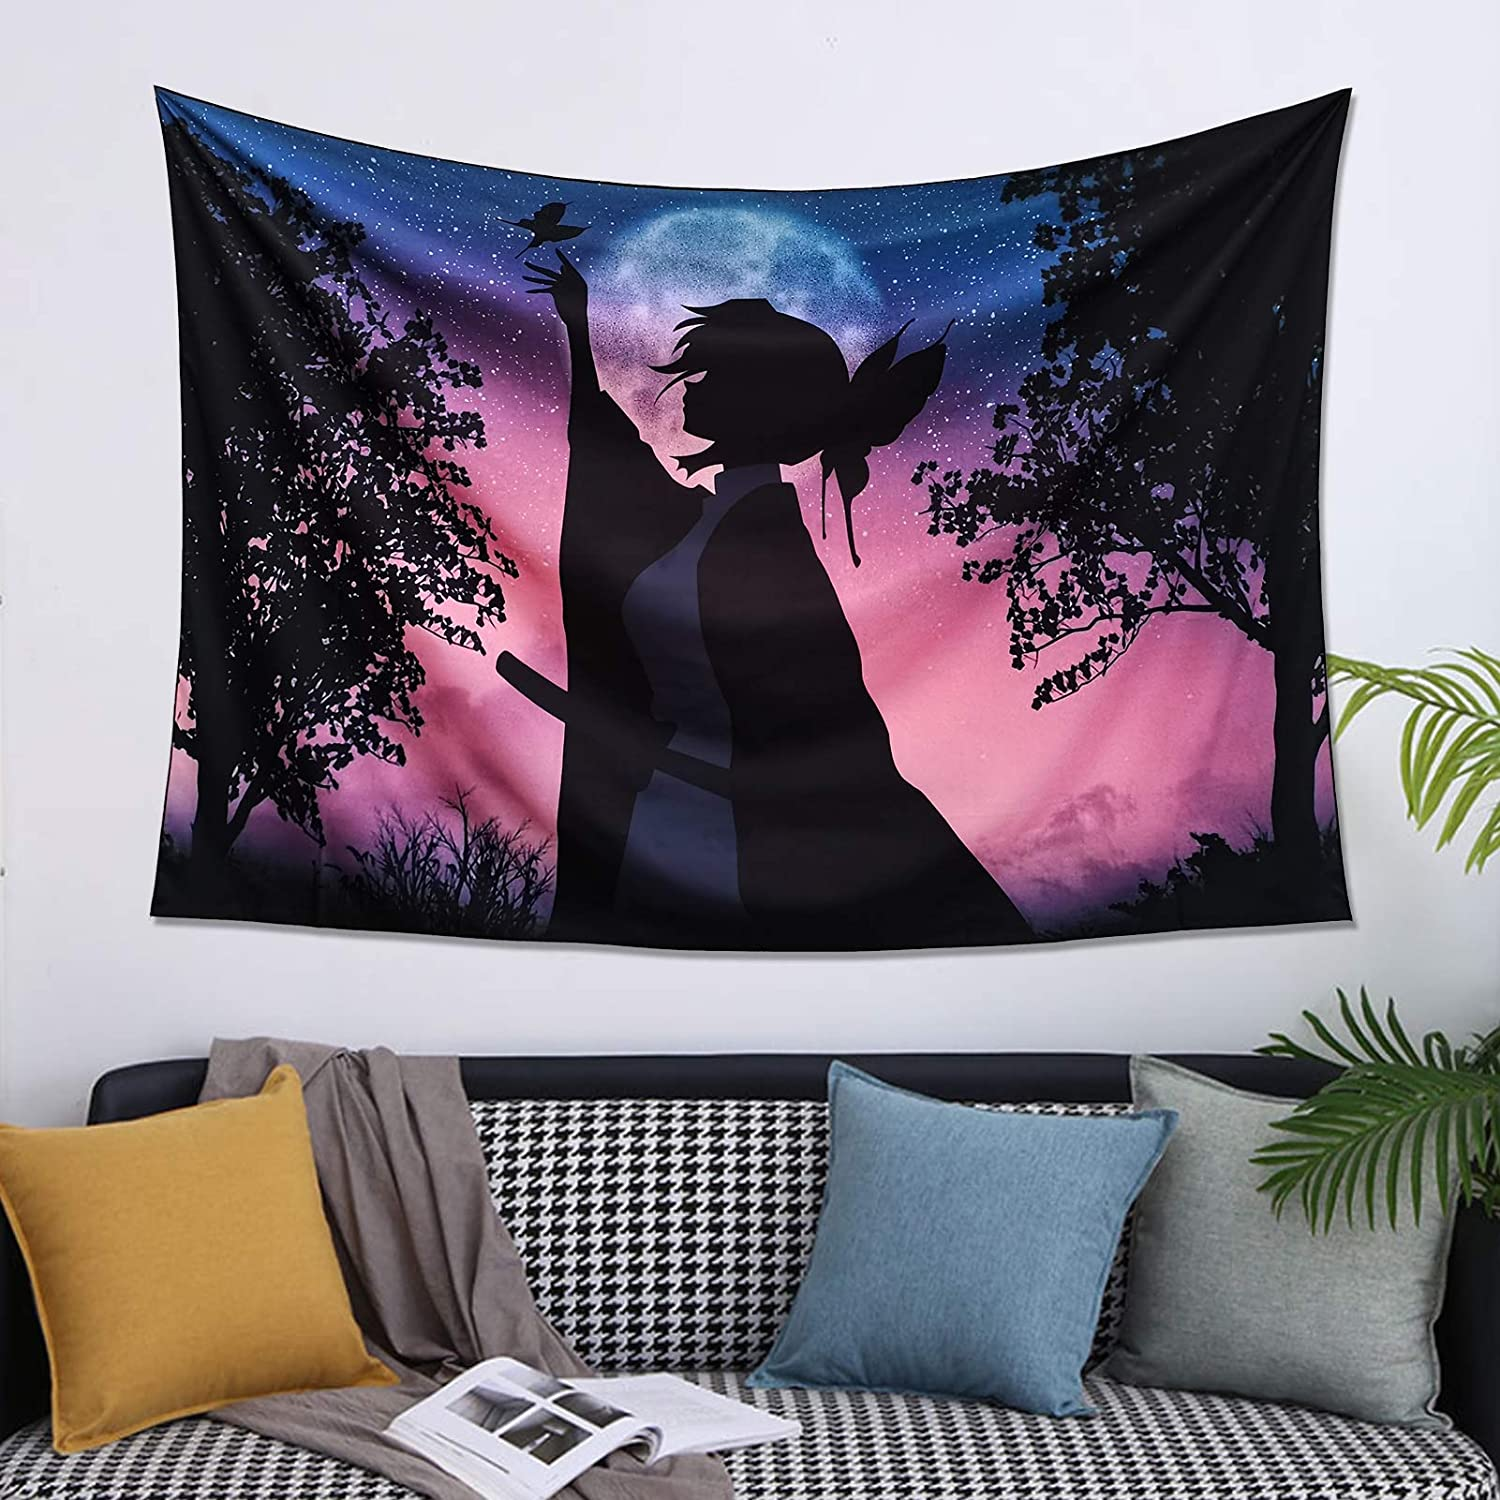 Demon Slayer Tapestry JPN Art Decor for Bedroom Cartoon Poster Background Tapestry Anime Tapestry Wall Hanging for Living Room, College Dormitory Room Home Decoration 60x40 Inches